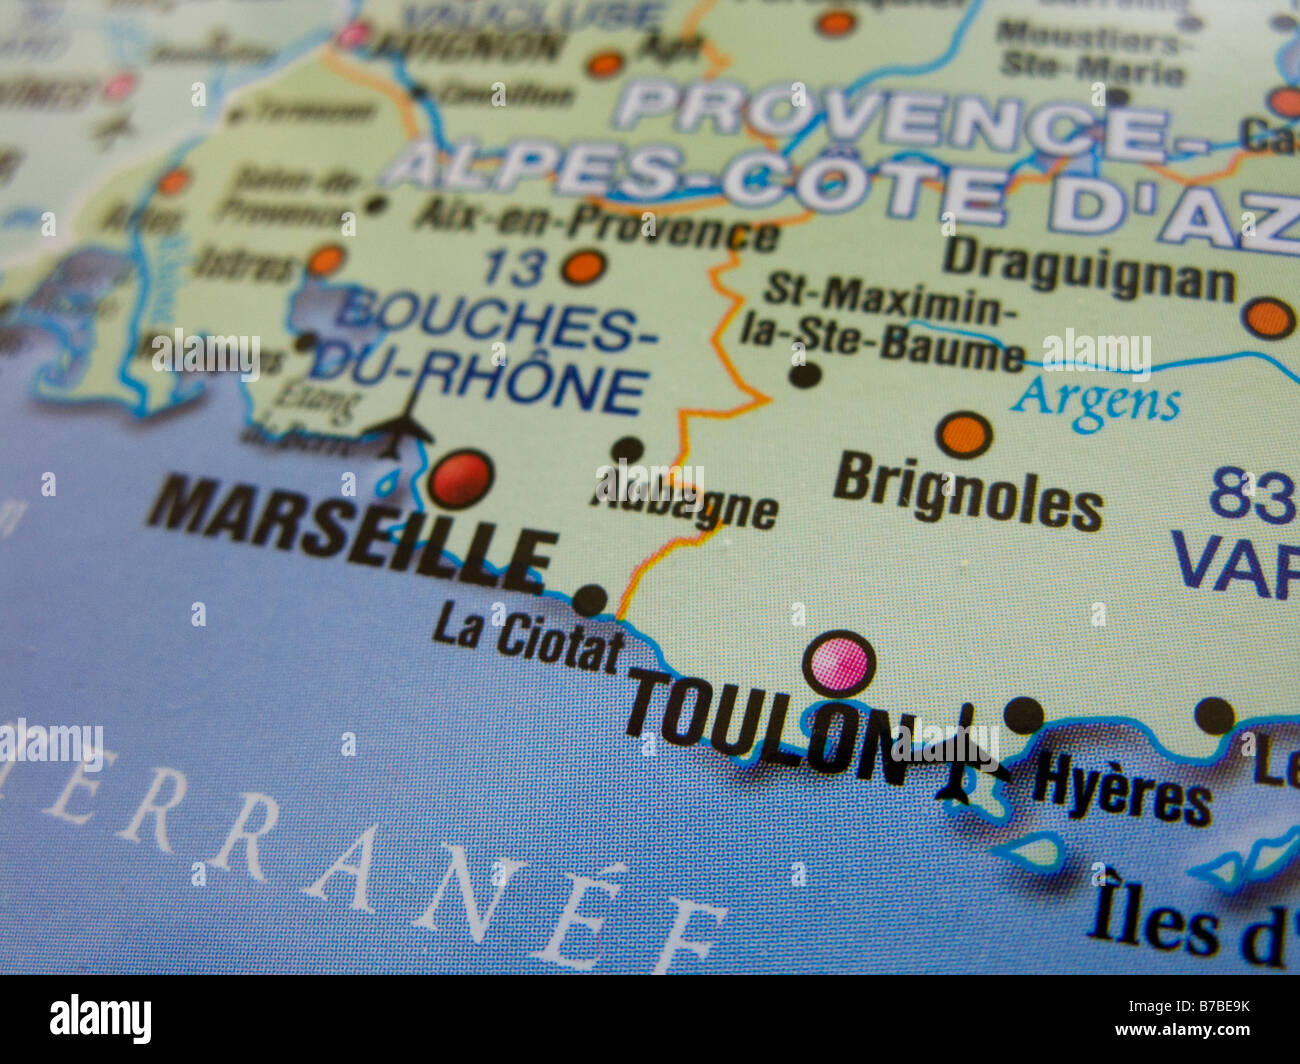 Map Of France Showing Marseille.Map Of France Showing Marseille And Toulon And Its Surrounding Areas